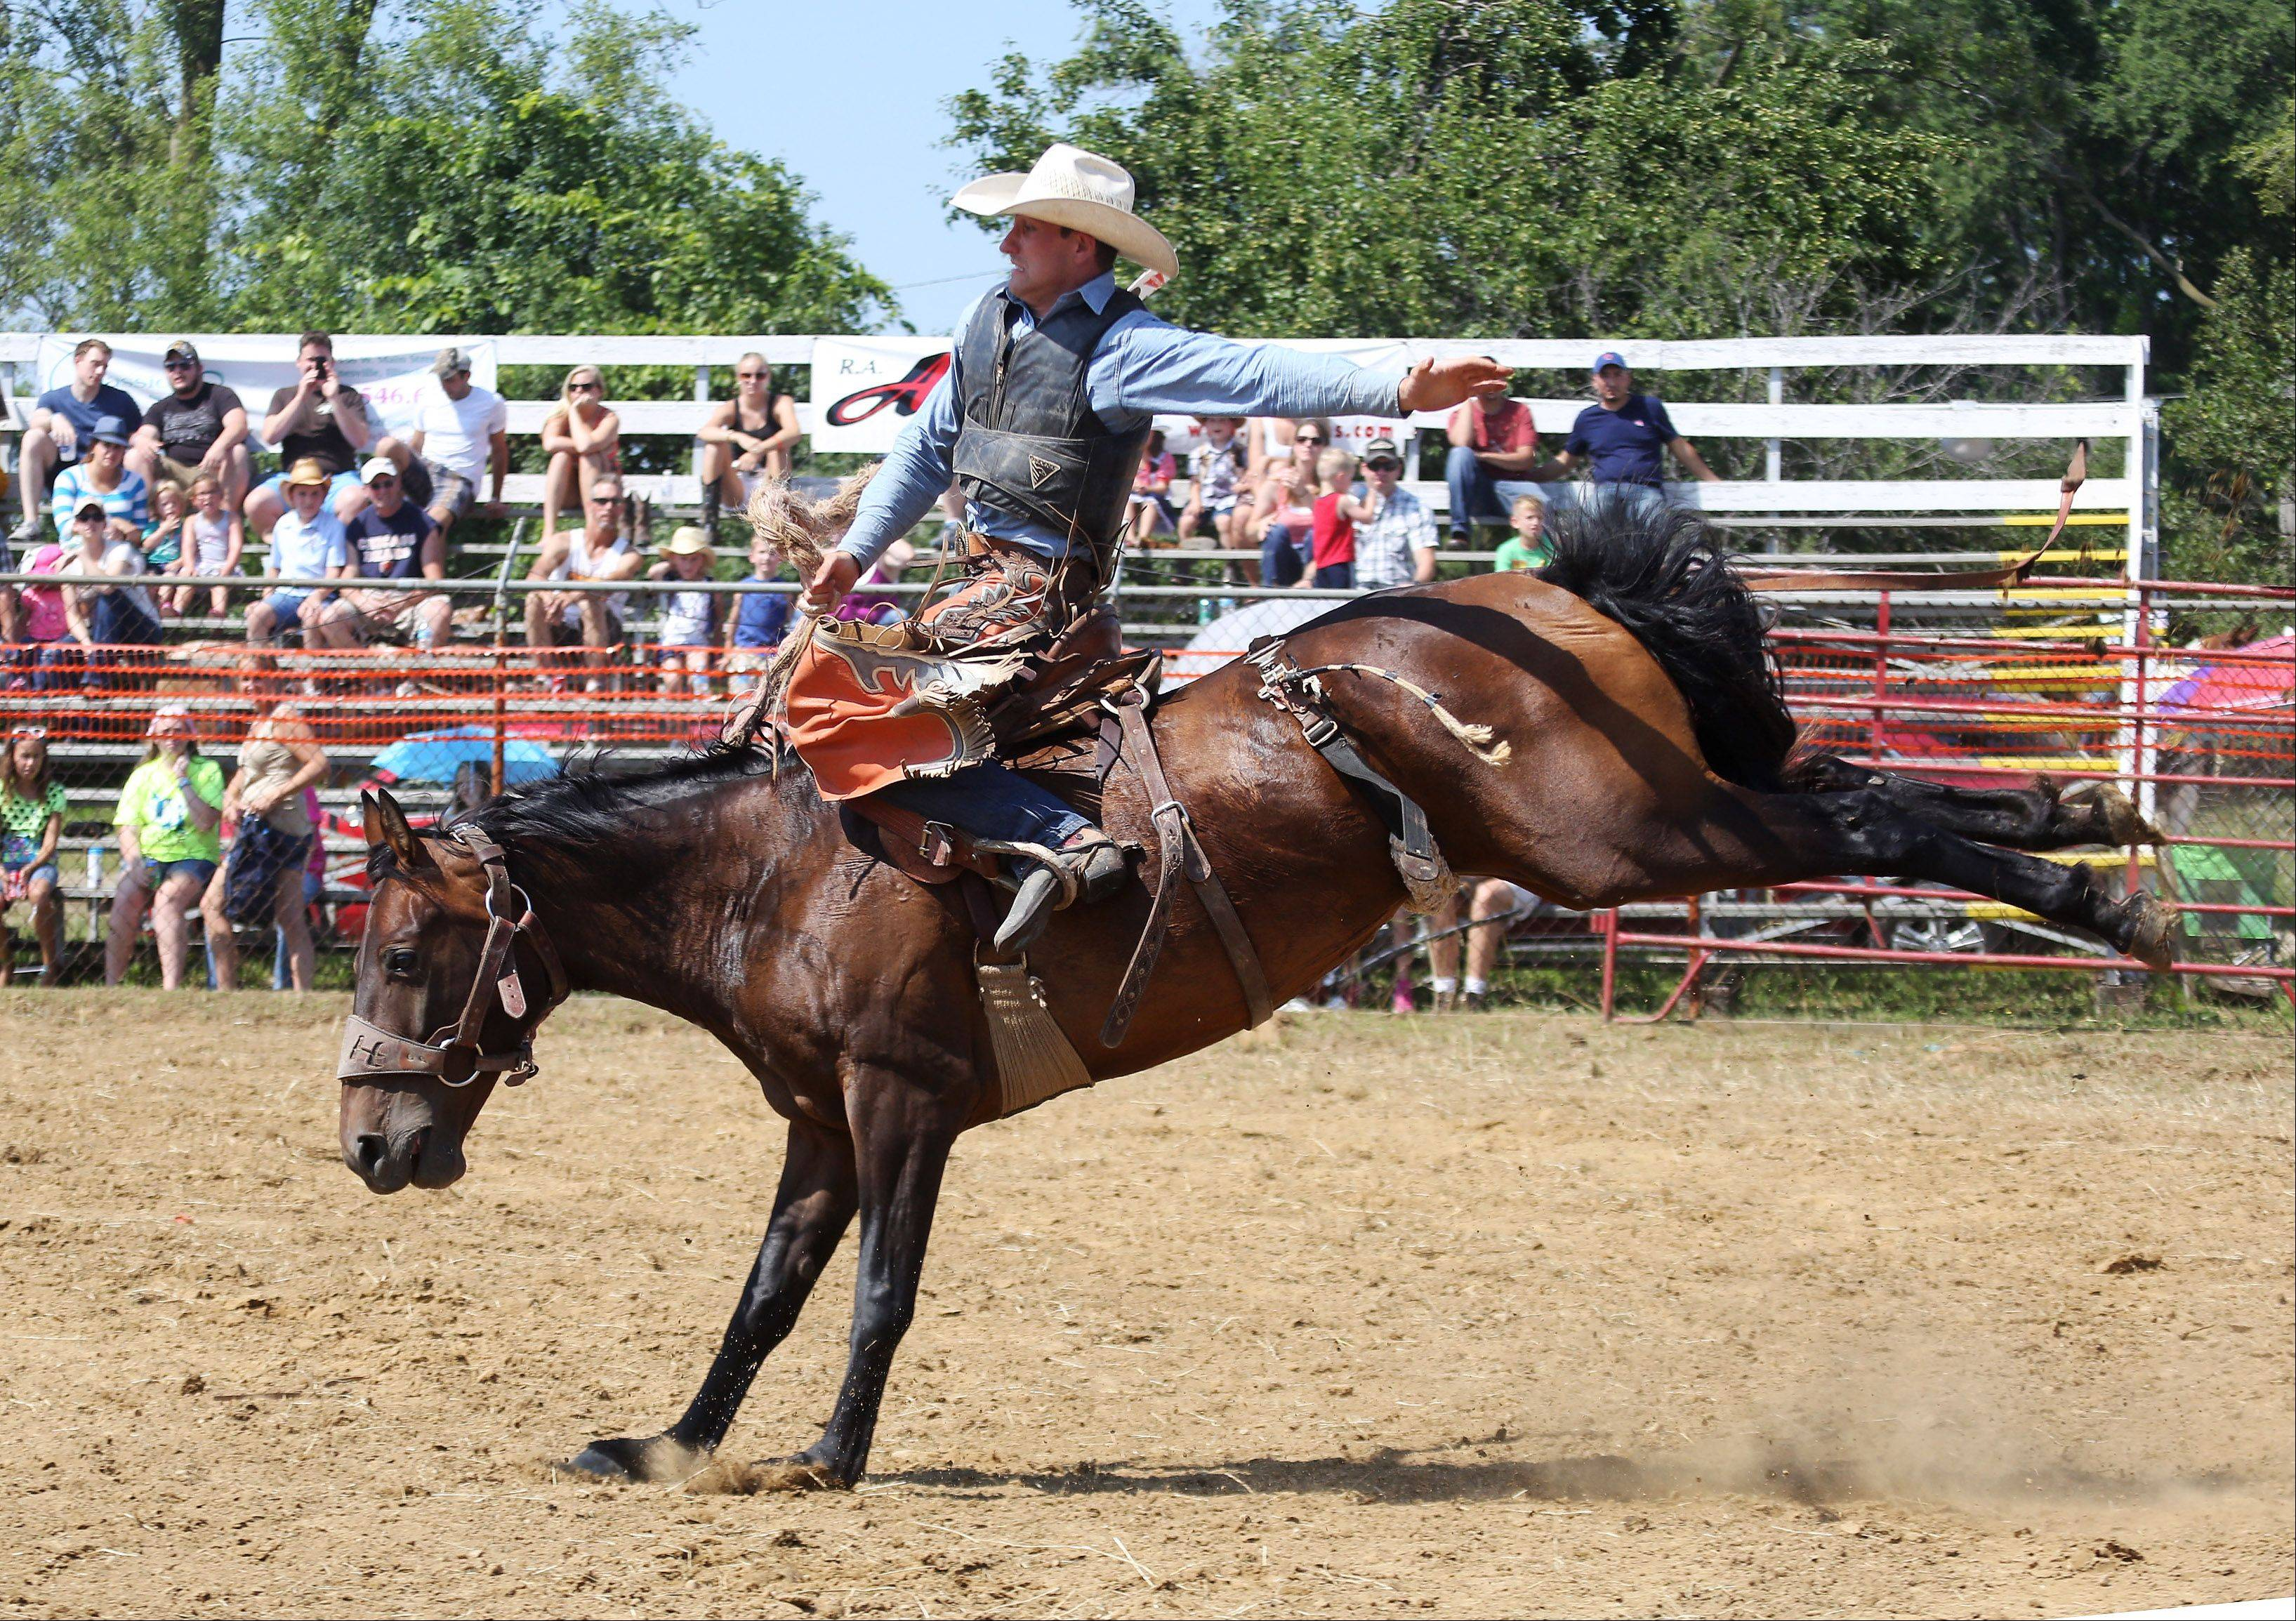 Trace Hughston rides saddleback bronc during the 50th Annual IPRA Championship Wauconda Rodeo Sunday at Green Oaks Rodeo Grounds. The Wauconda Area Chamber of Commerce sponsored the event that featured a mechanical bull, pony rides and calf roping as well as the rodeo show.